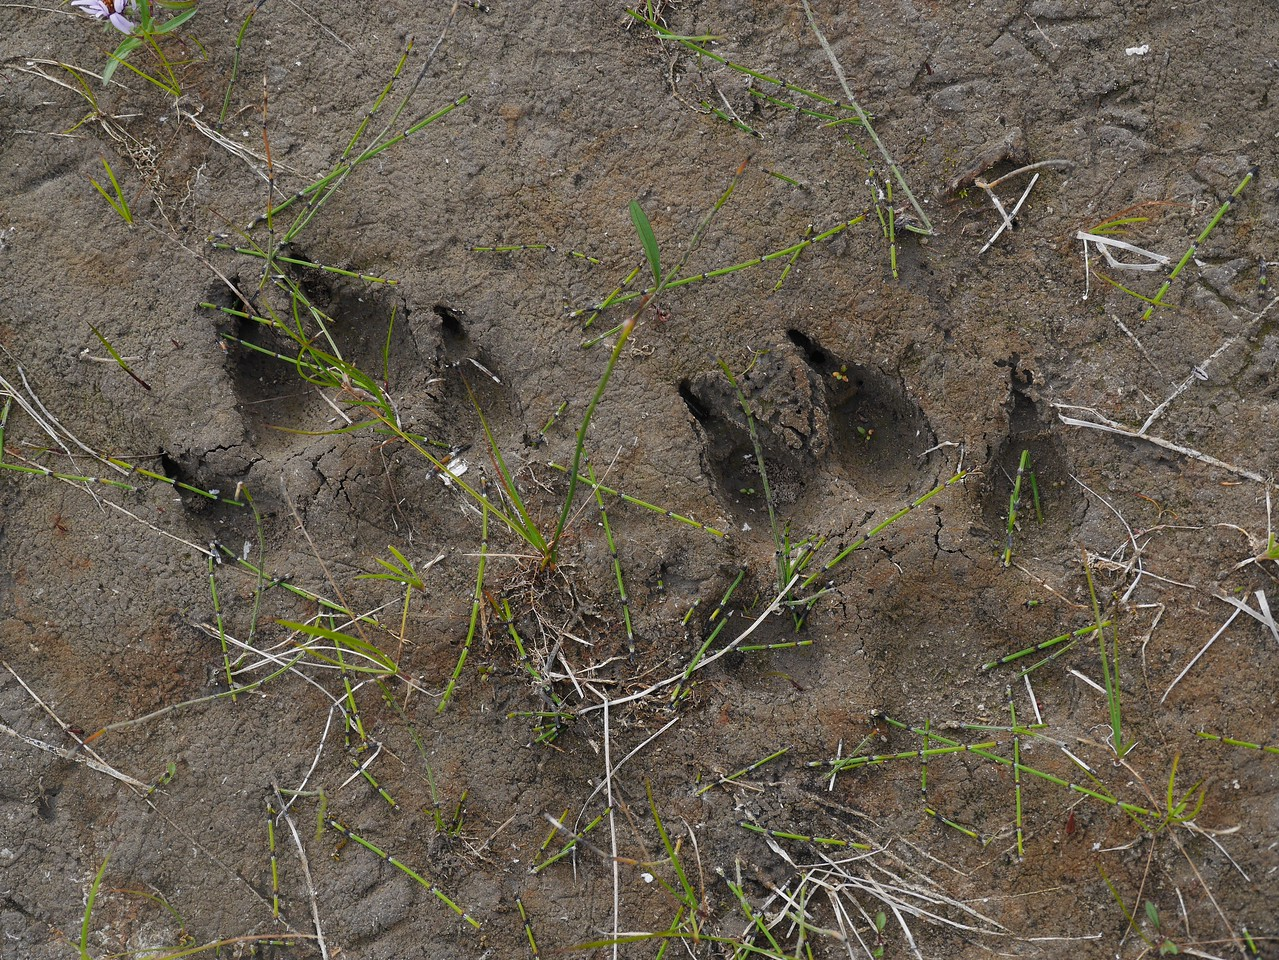 Day 16 - We saw many wolf tracks but no wolves.